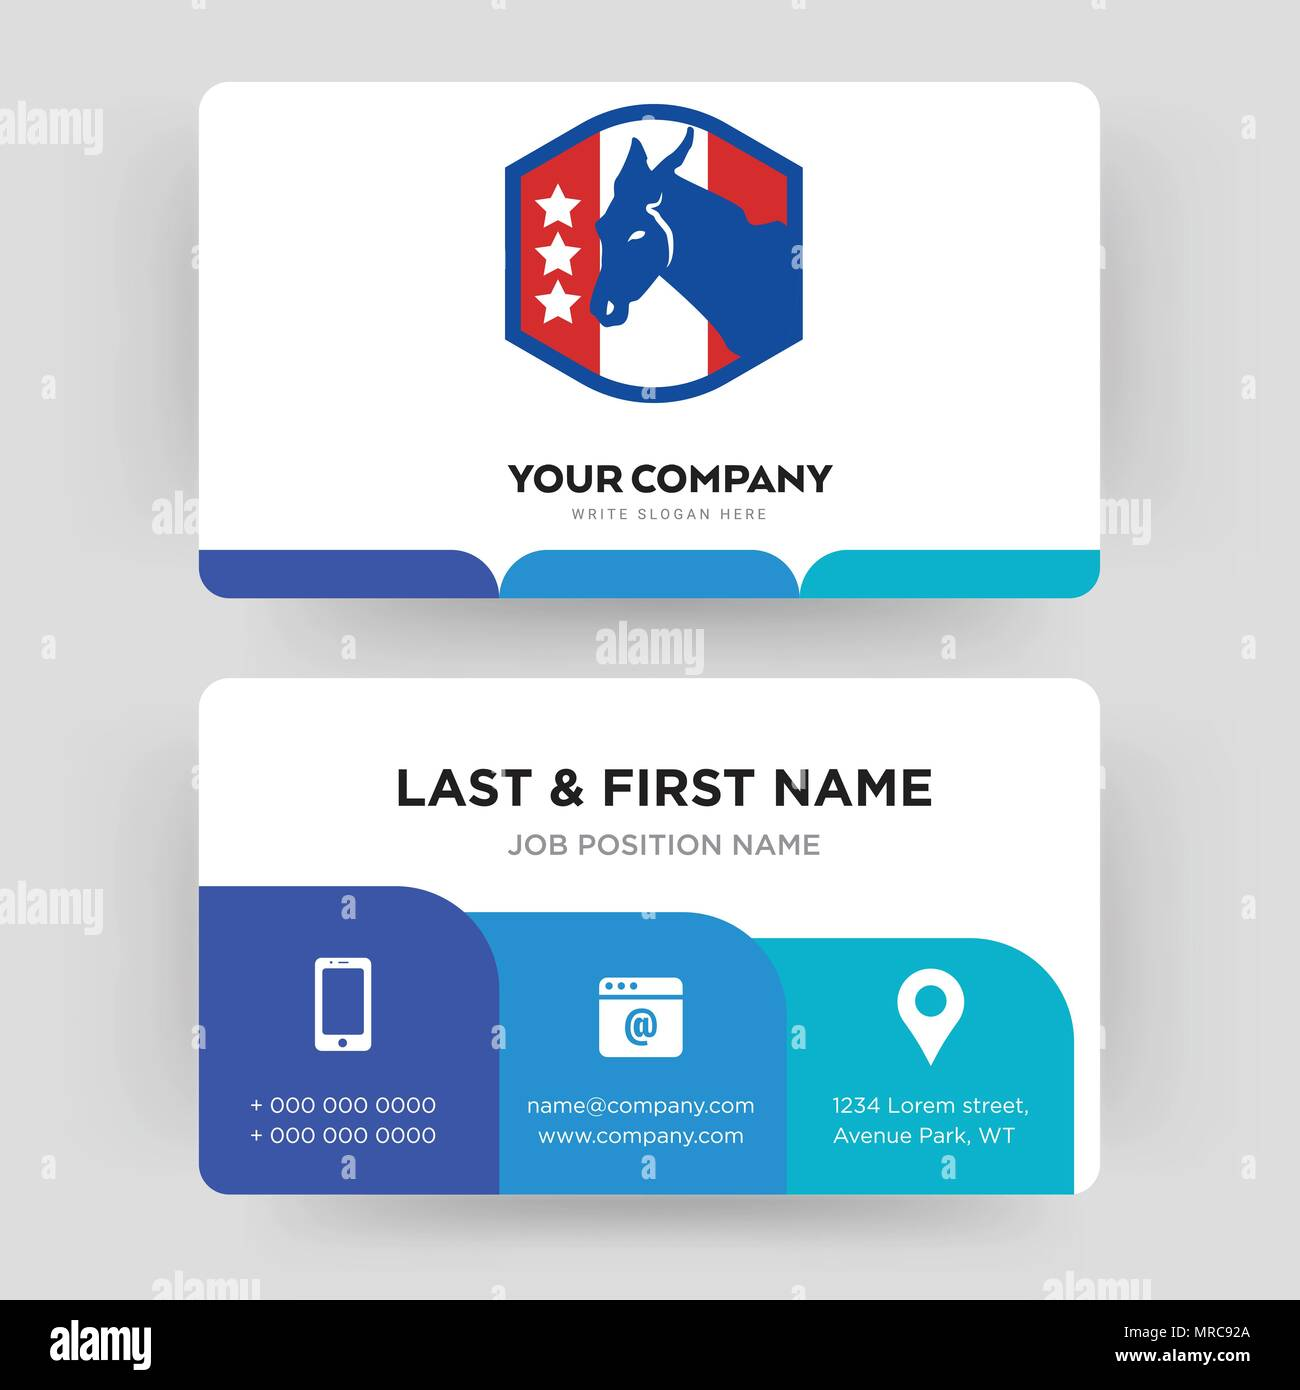 democratic party, business card design template, Visiting for your company, Modern Creative and Clean identity Card Vector - Stock Image